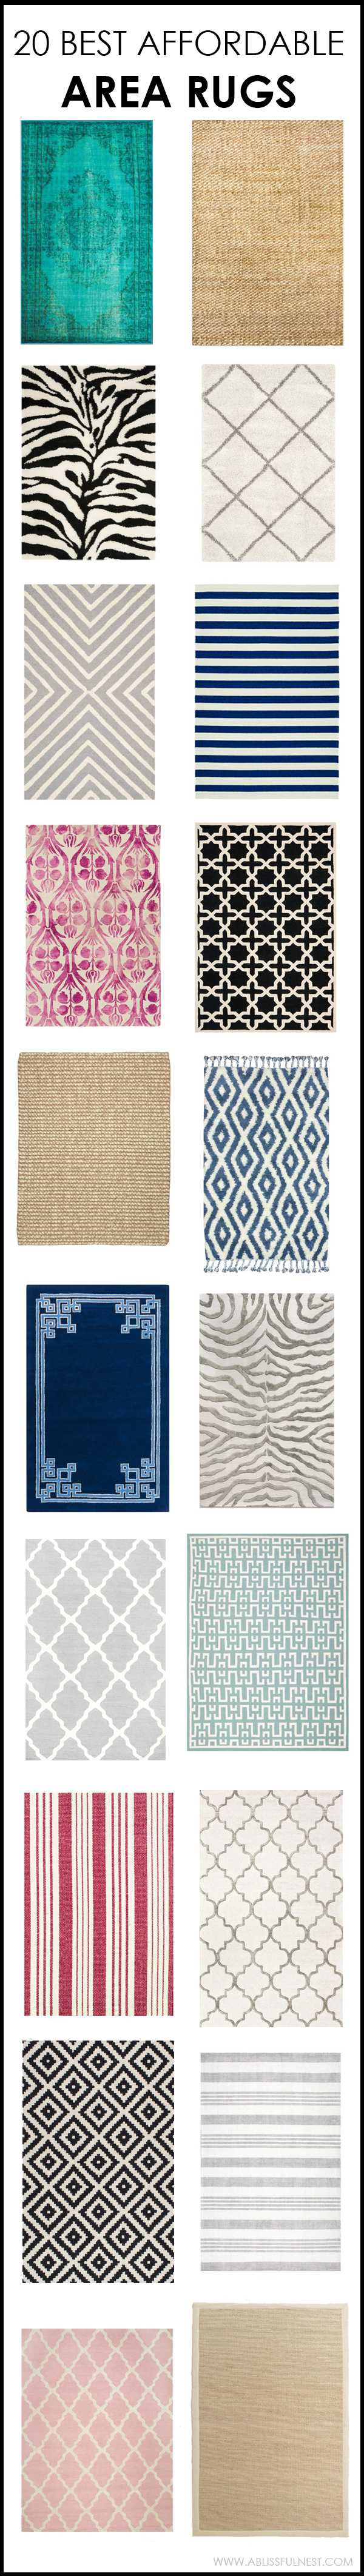 We Ve Got 20 Of The Best Area Rugs For You To Choose From